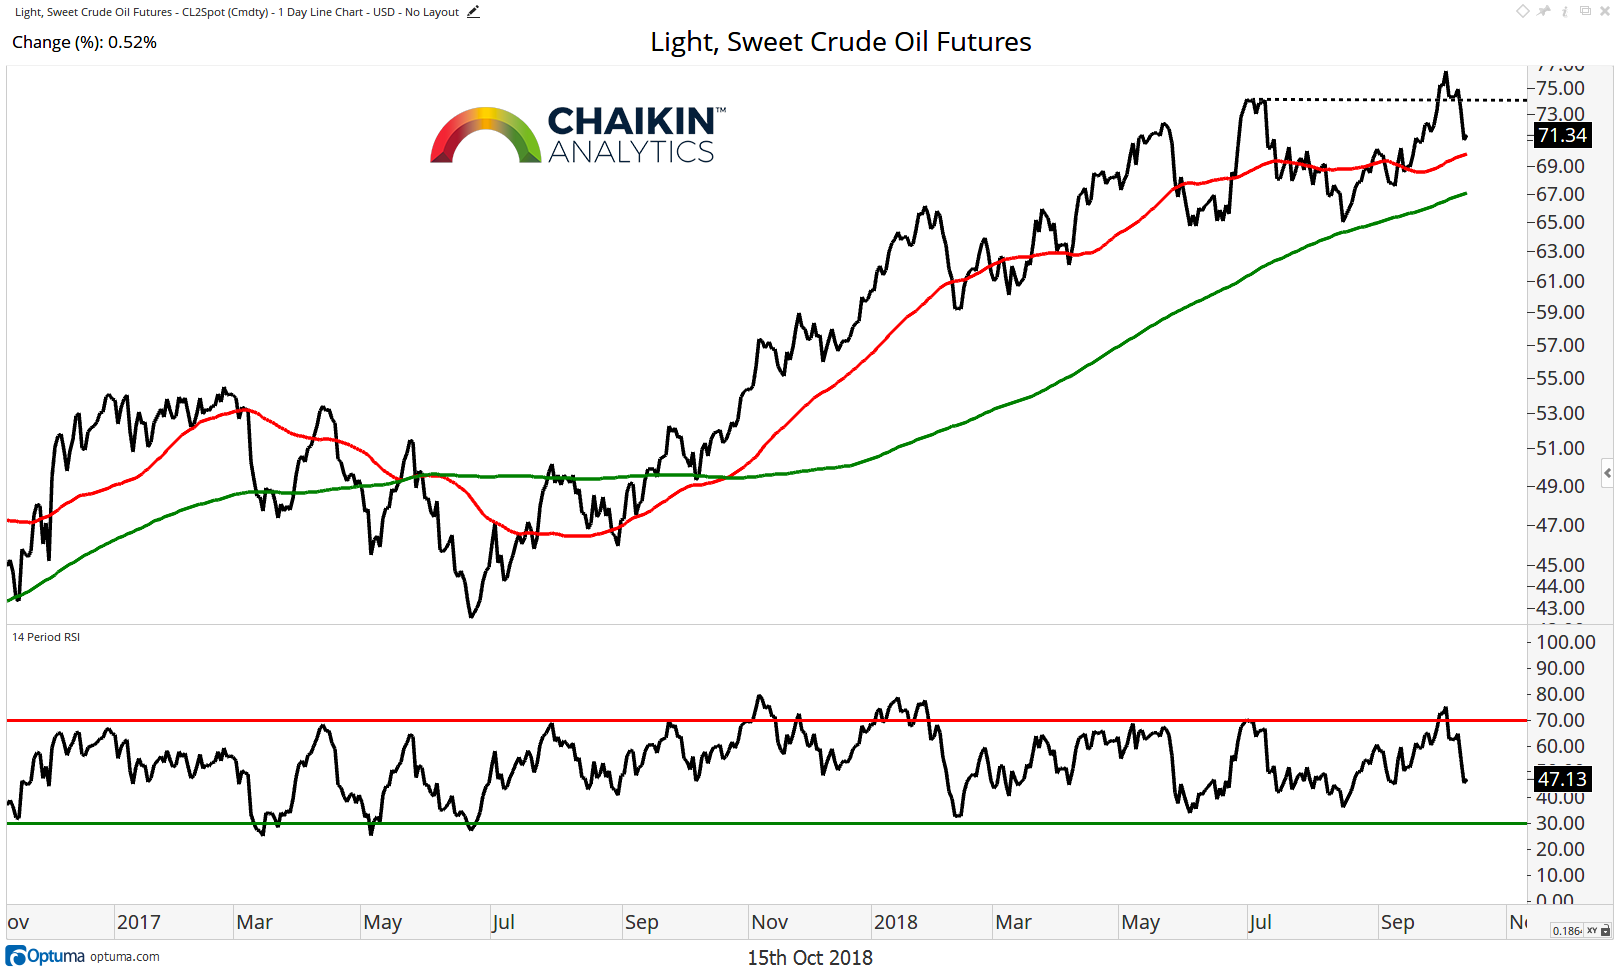 crude oil futures trading price chart analysis bearish october